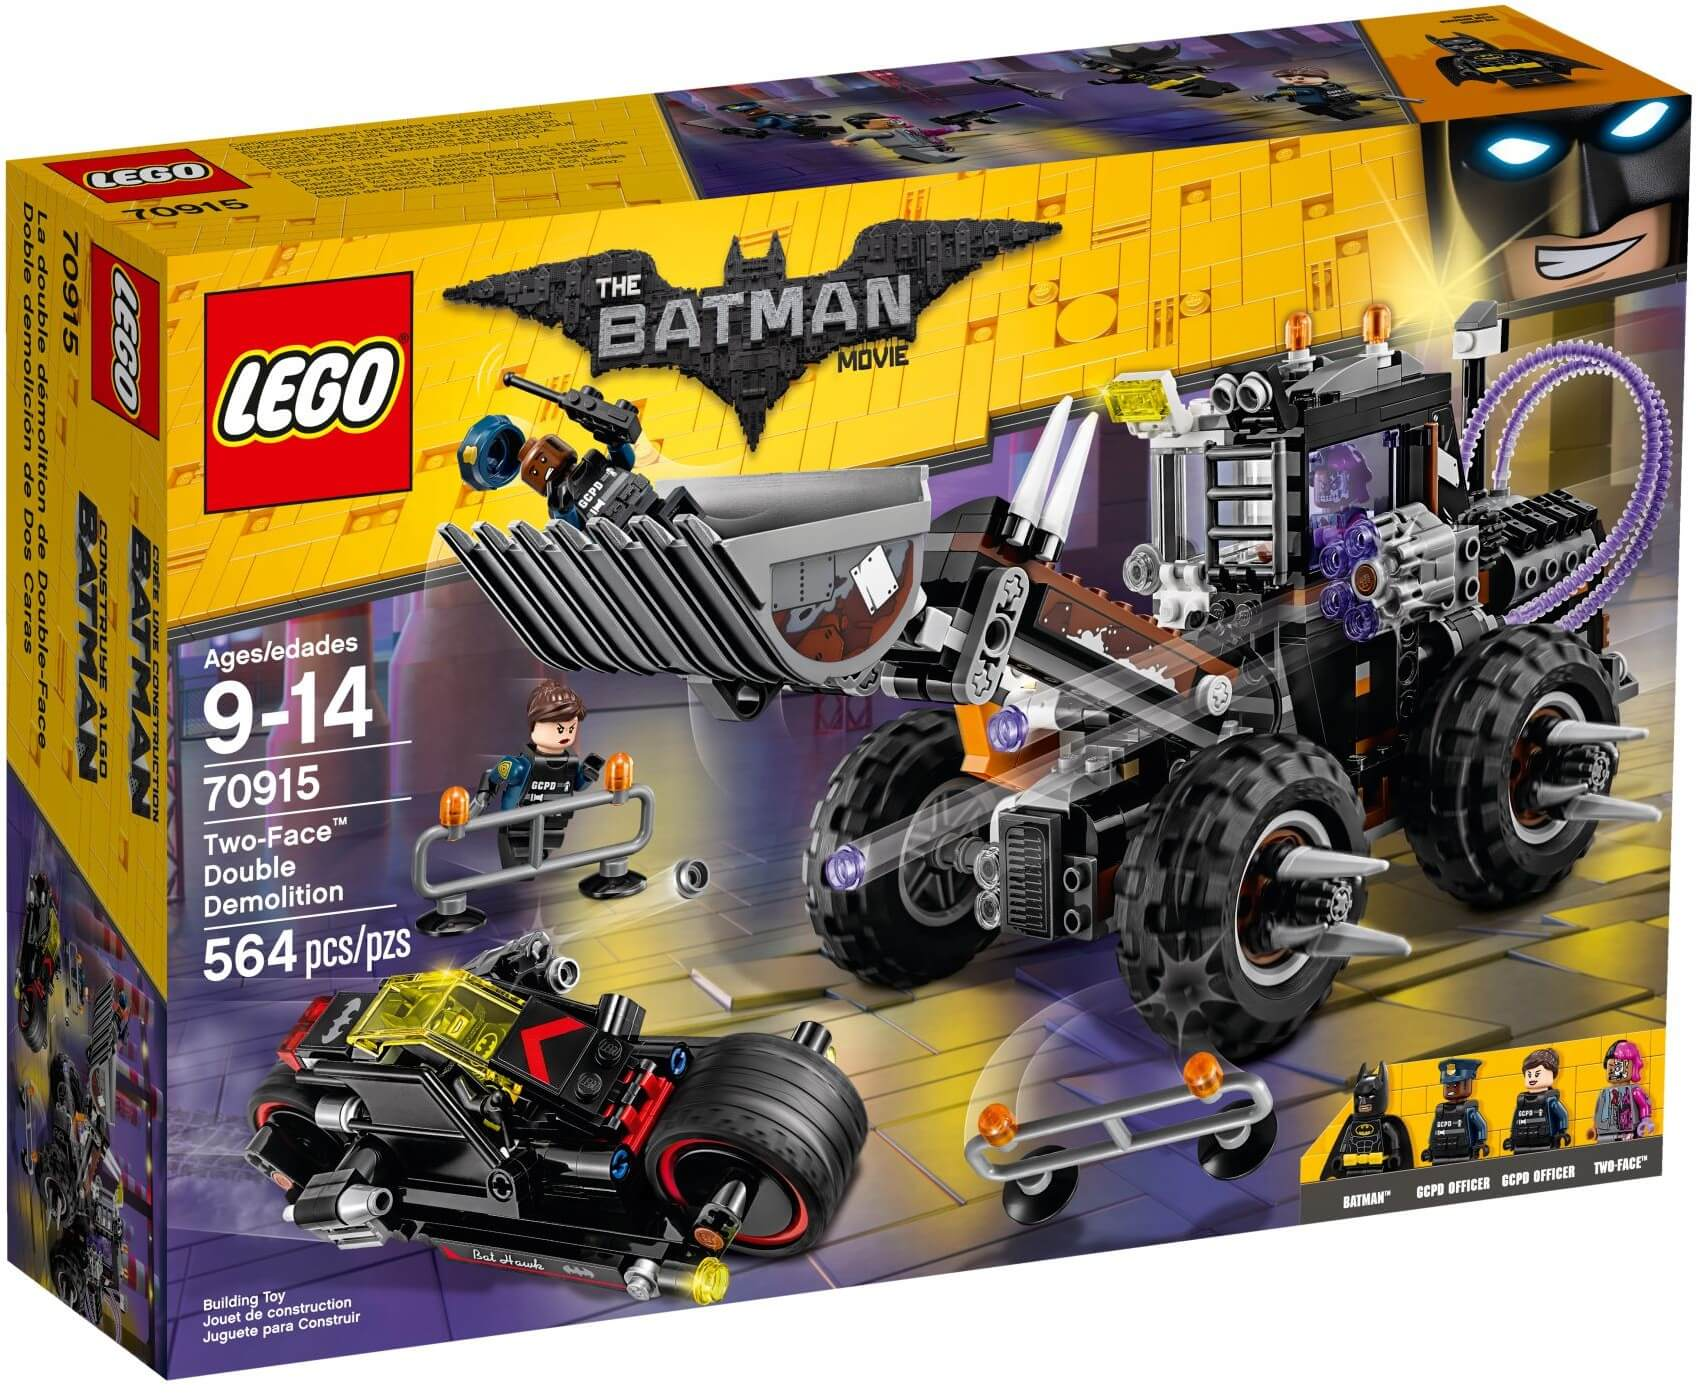 Mua đồ chơi LEGO 70915 - LEGO The Batman Movie 70915 - Batman đại chiến Máy Ủi Khổng Lồ (LEGO The Batman Movie Two-Face Double Demolition)